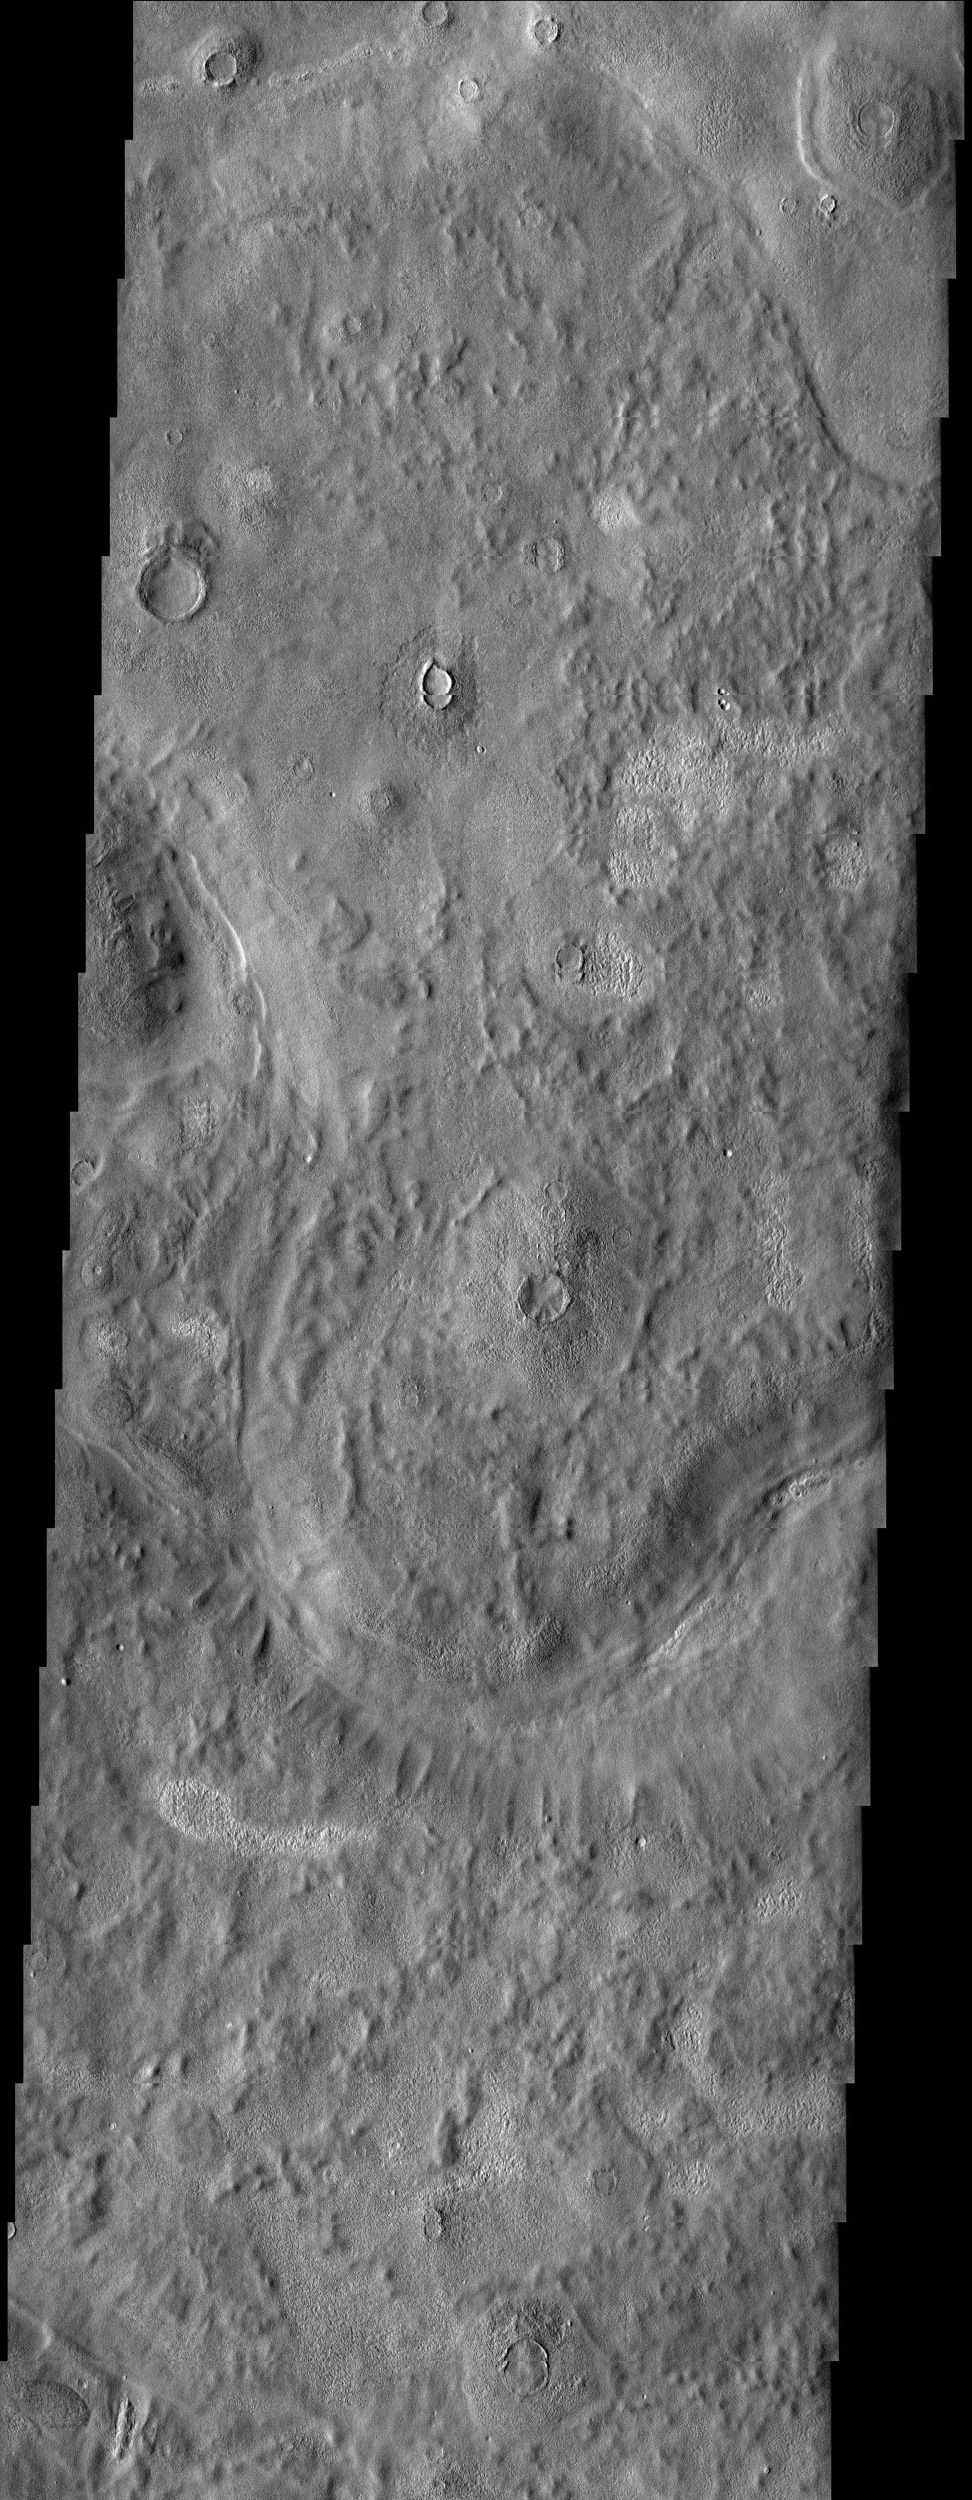 An unusual mix of textures is featured in this image from NASA's Mars Odyssey spacecraft of a surface east of the Phlegra Montes. Scabby mounds, commonly occurring around degraded craters, mix with a more muted, knobby terrain.